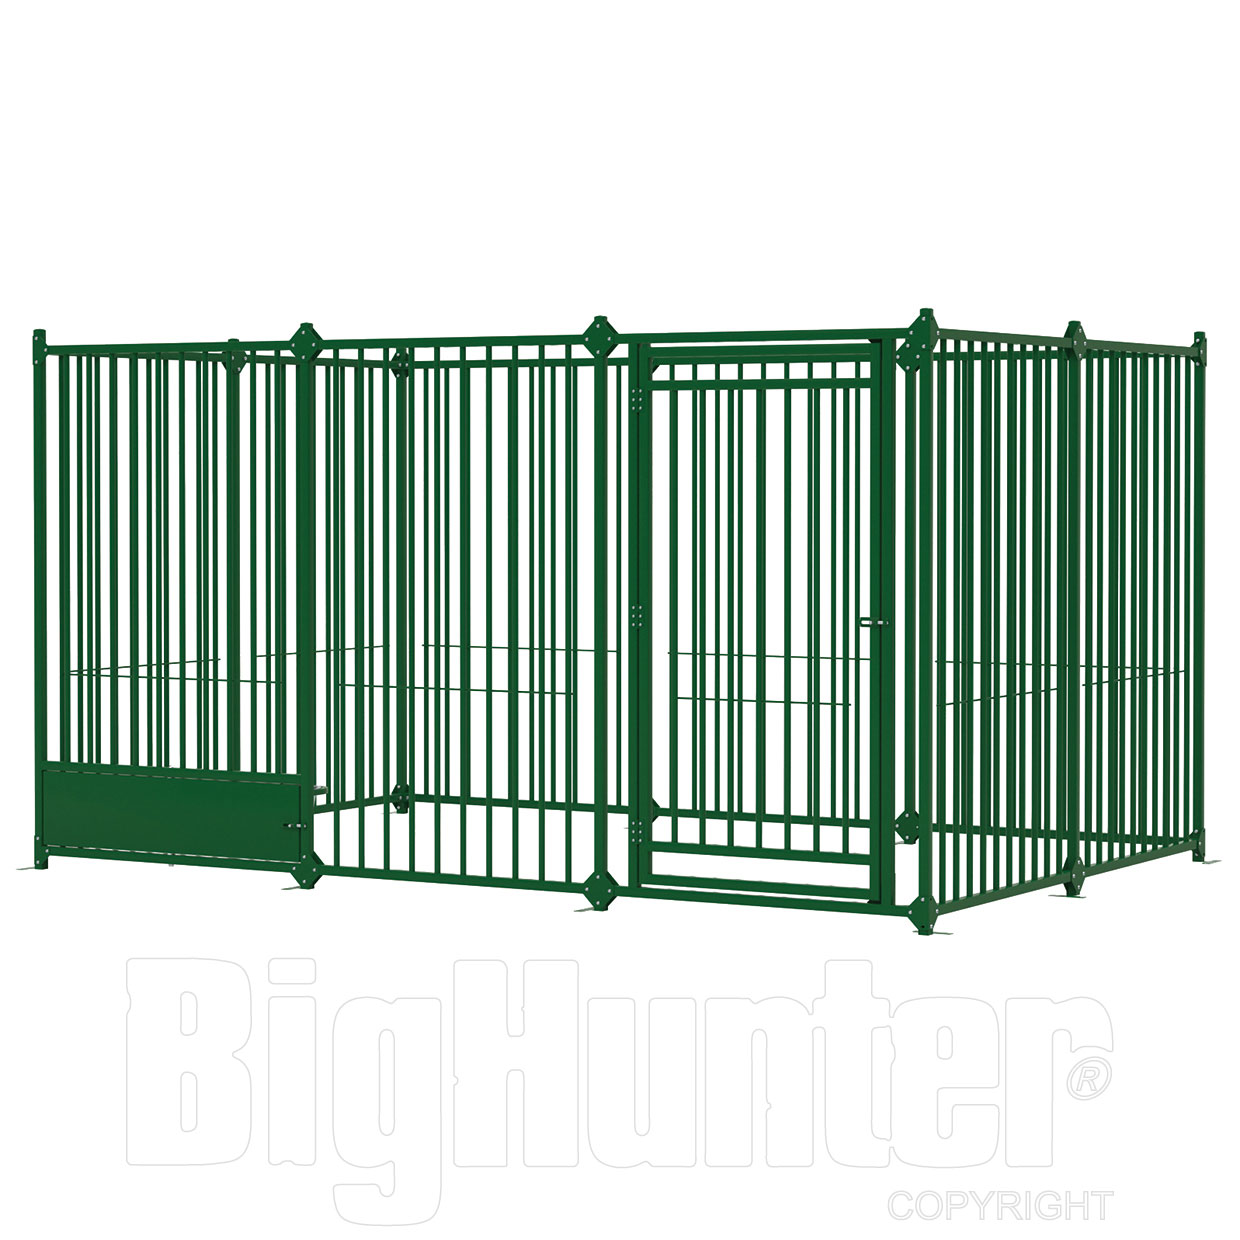 Ferplast recinto per cani modulare dog pen 3x2 for Recinto in legno per cani